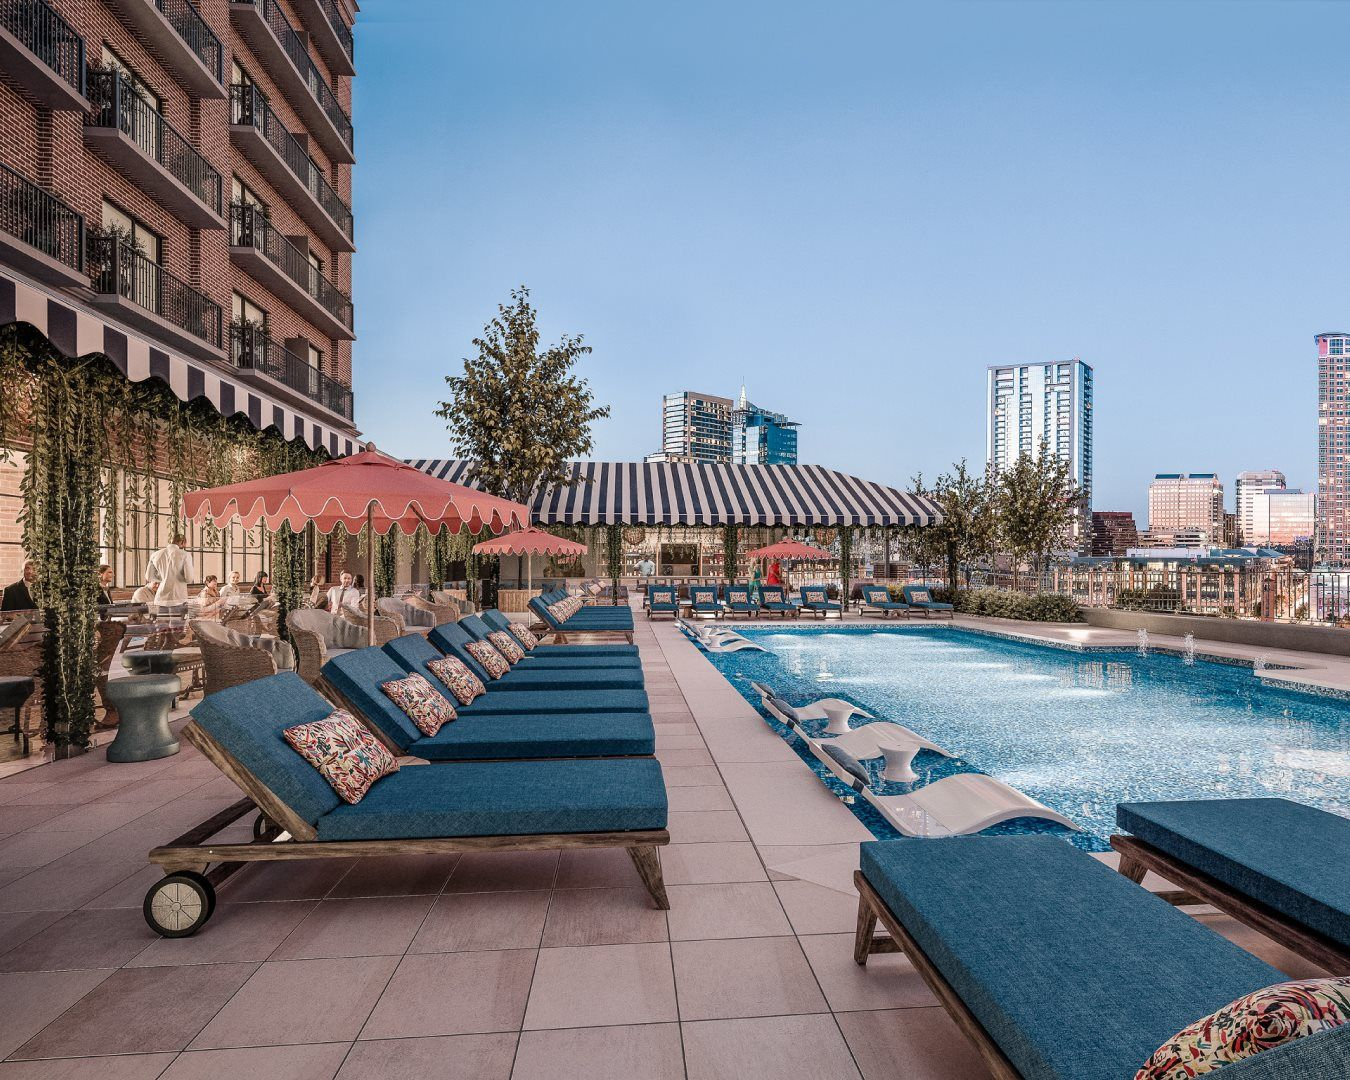 Lounging Poolside On The 7th Floor At Zazaaustin Overlooking